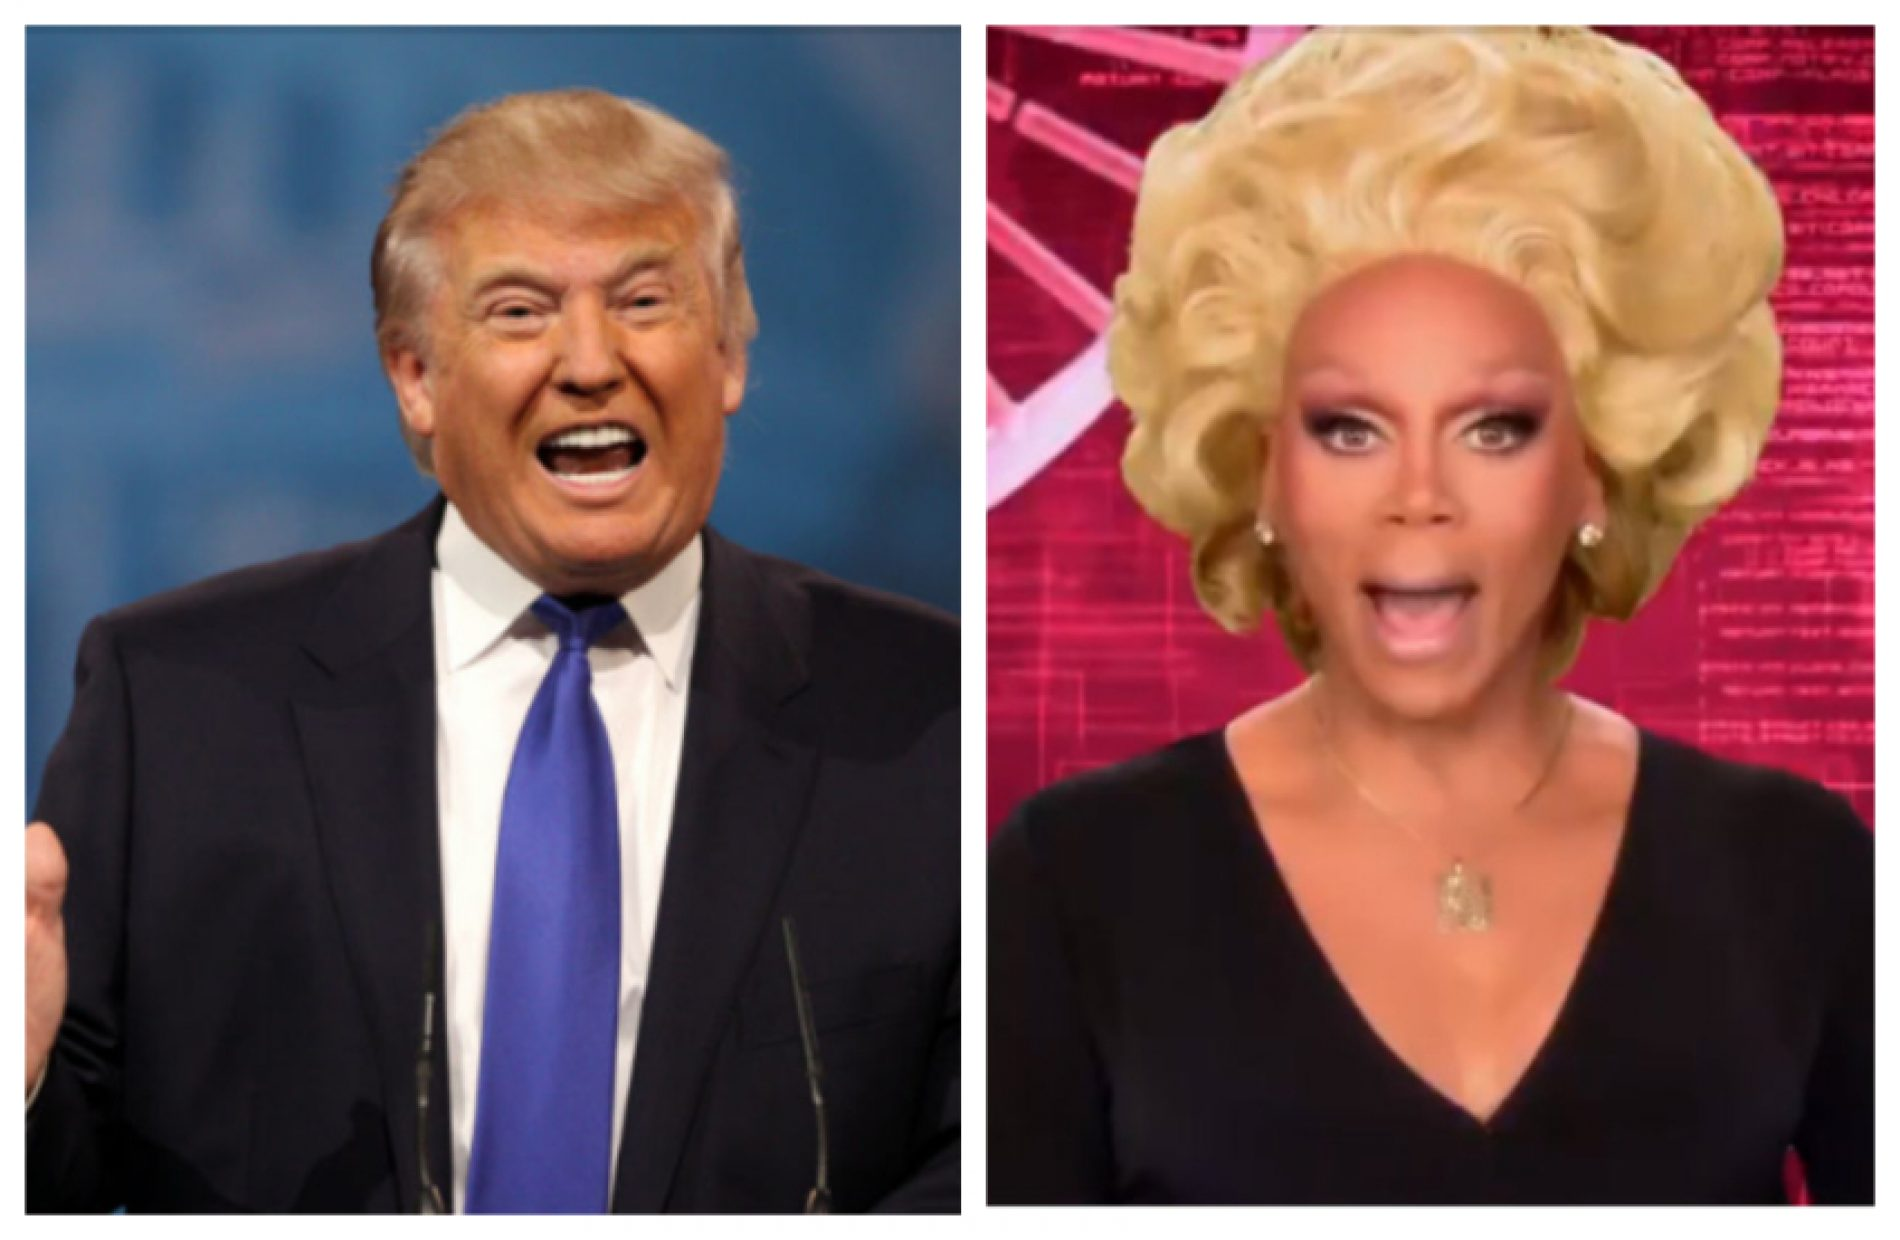 Donald Trump accidentally created a 'RuPaul's Drag Race' hashtag